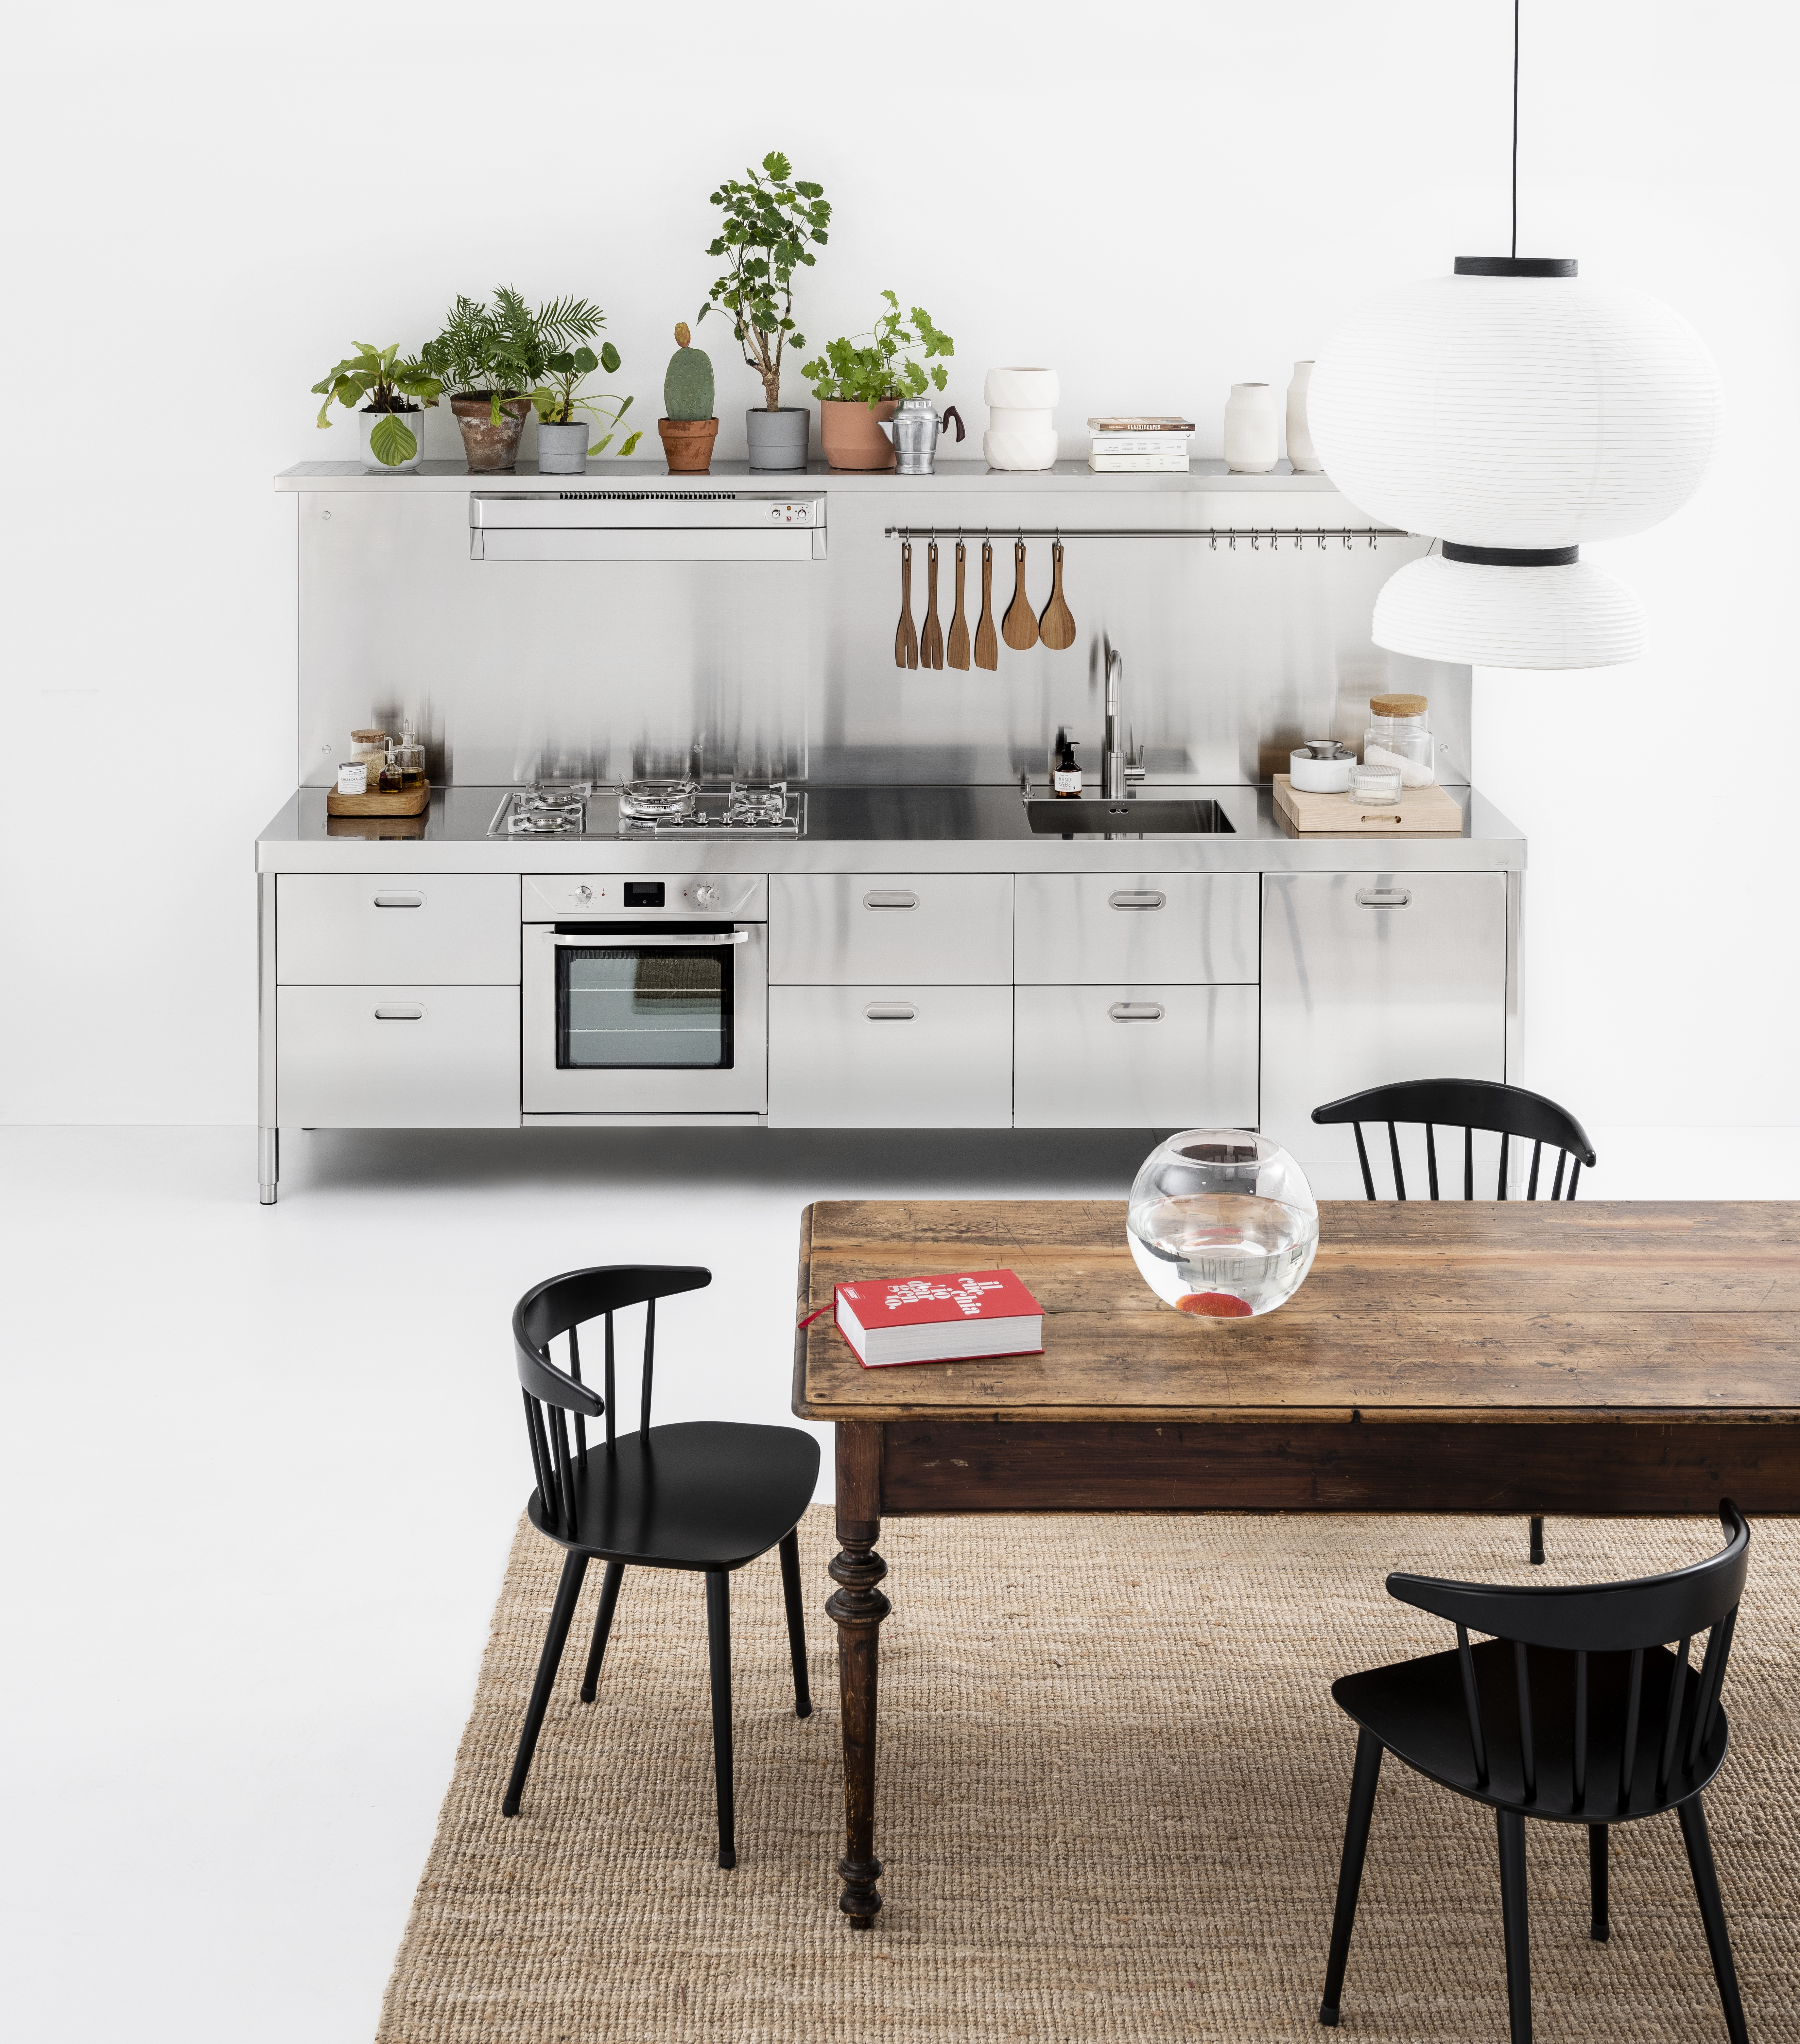 LIVING KITCHEN: four new solutions by Alpes-Inox - Home Appliances World